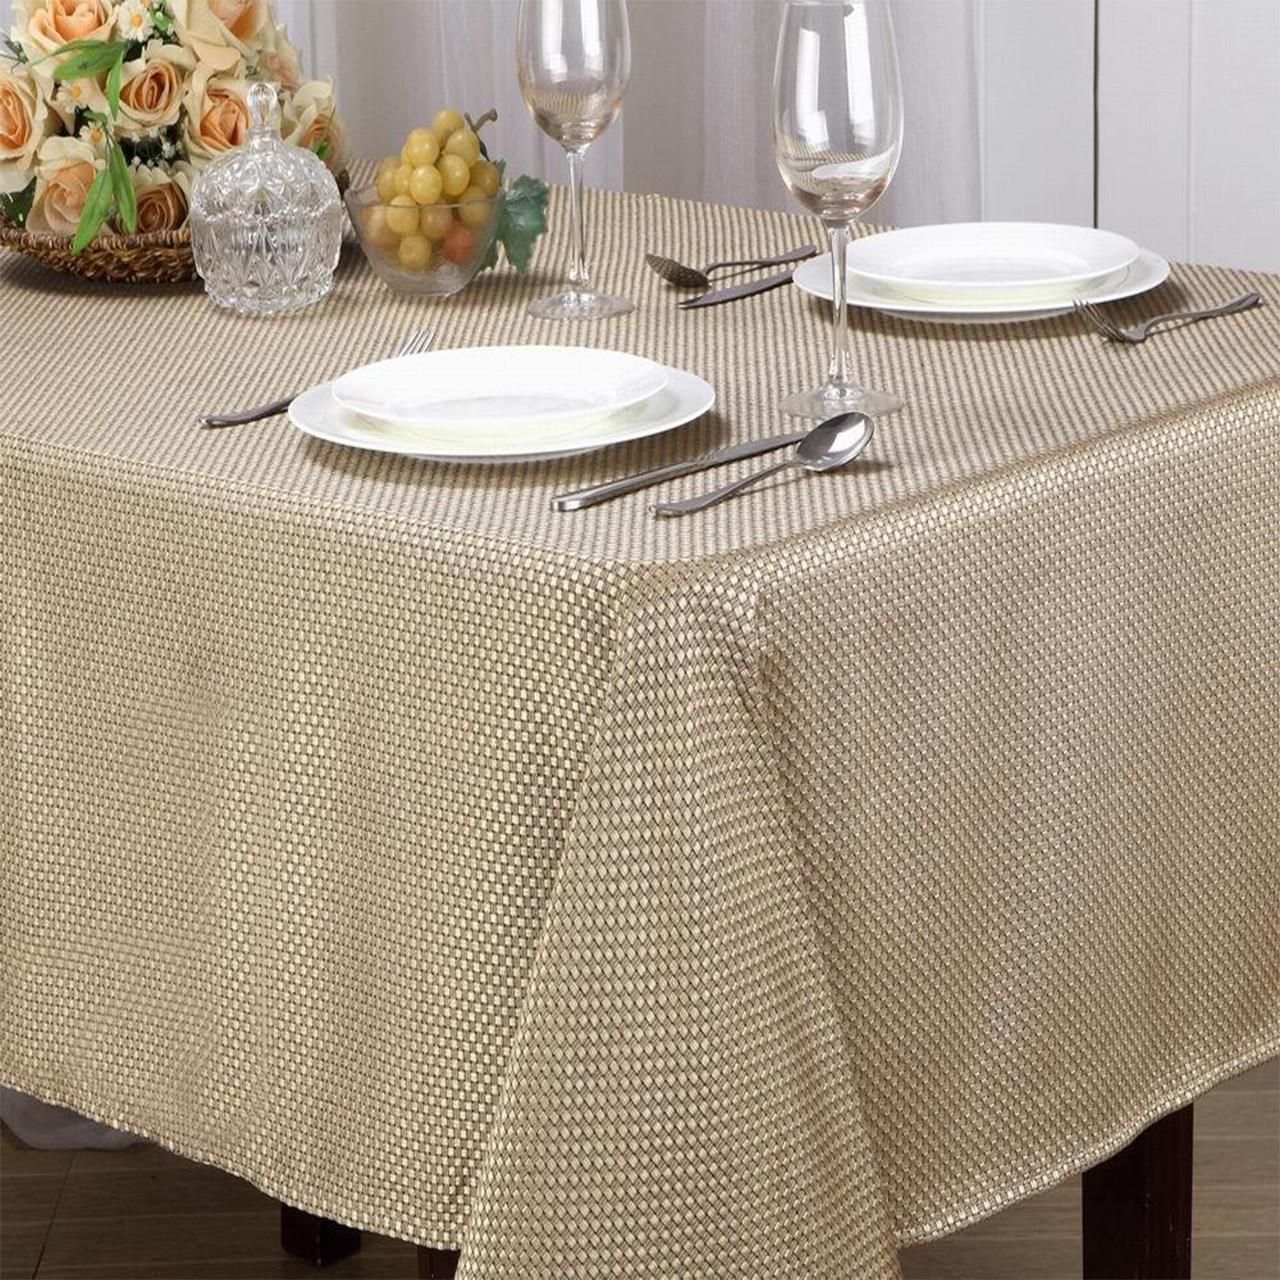 Since The Dining Table Is Usually The Largest Object In The Room, A Themed  Tablecloth Is A Subtle Yet Effective Complement To The Festive Spirit.